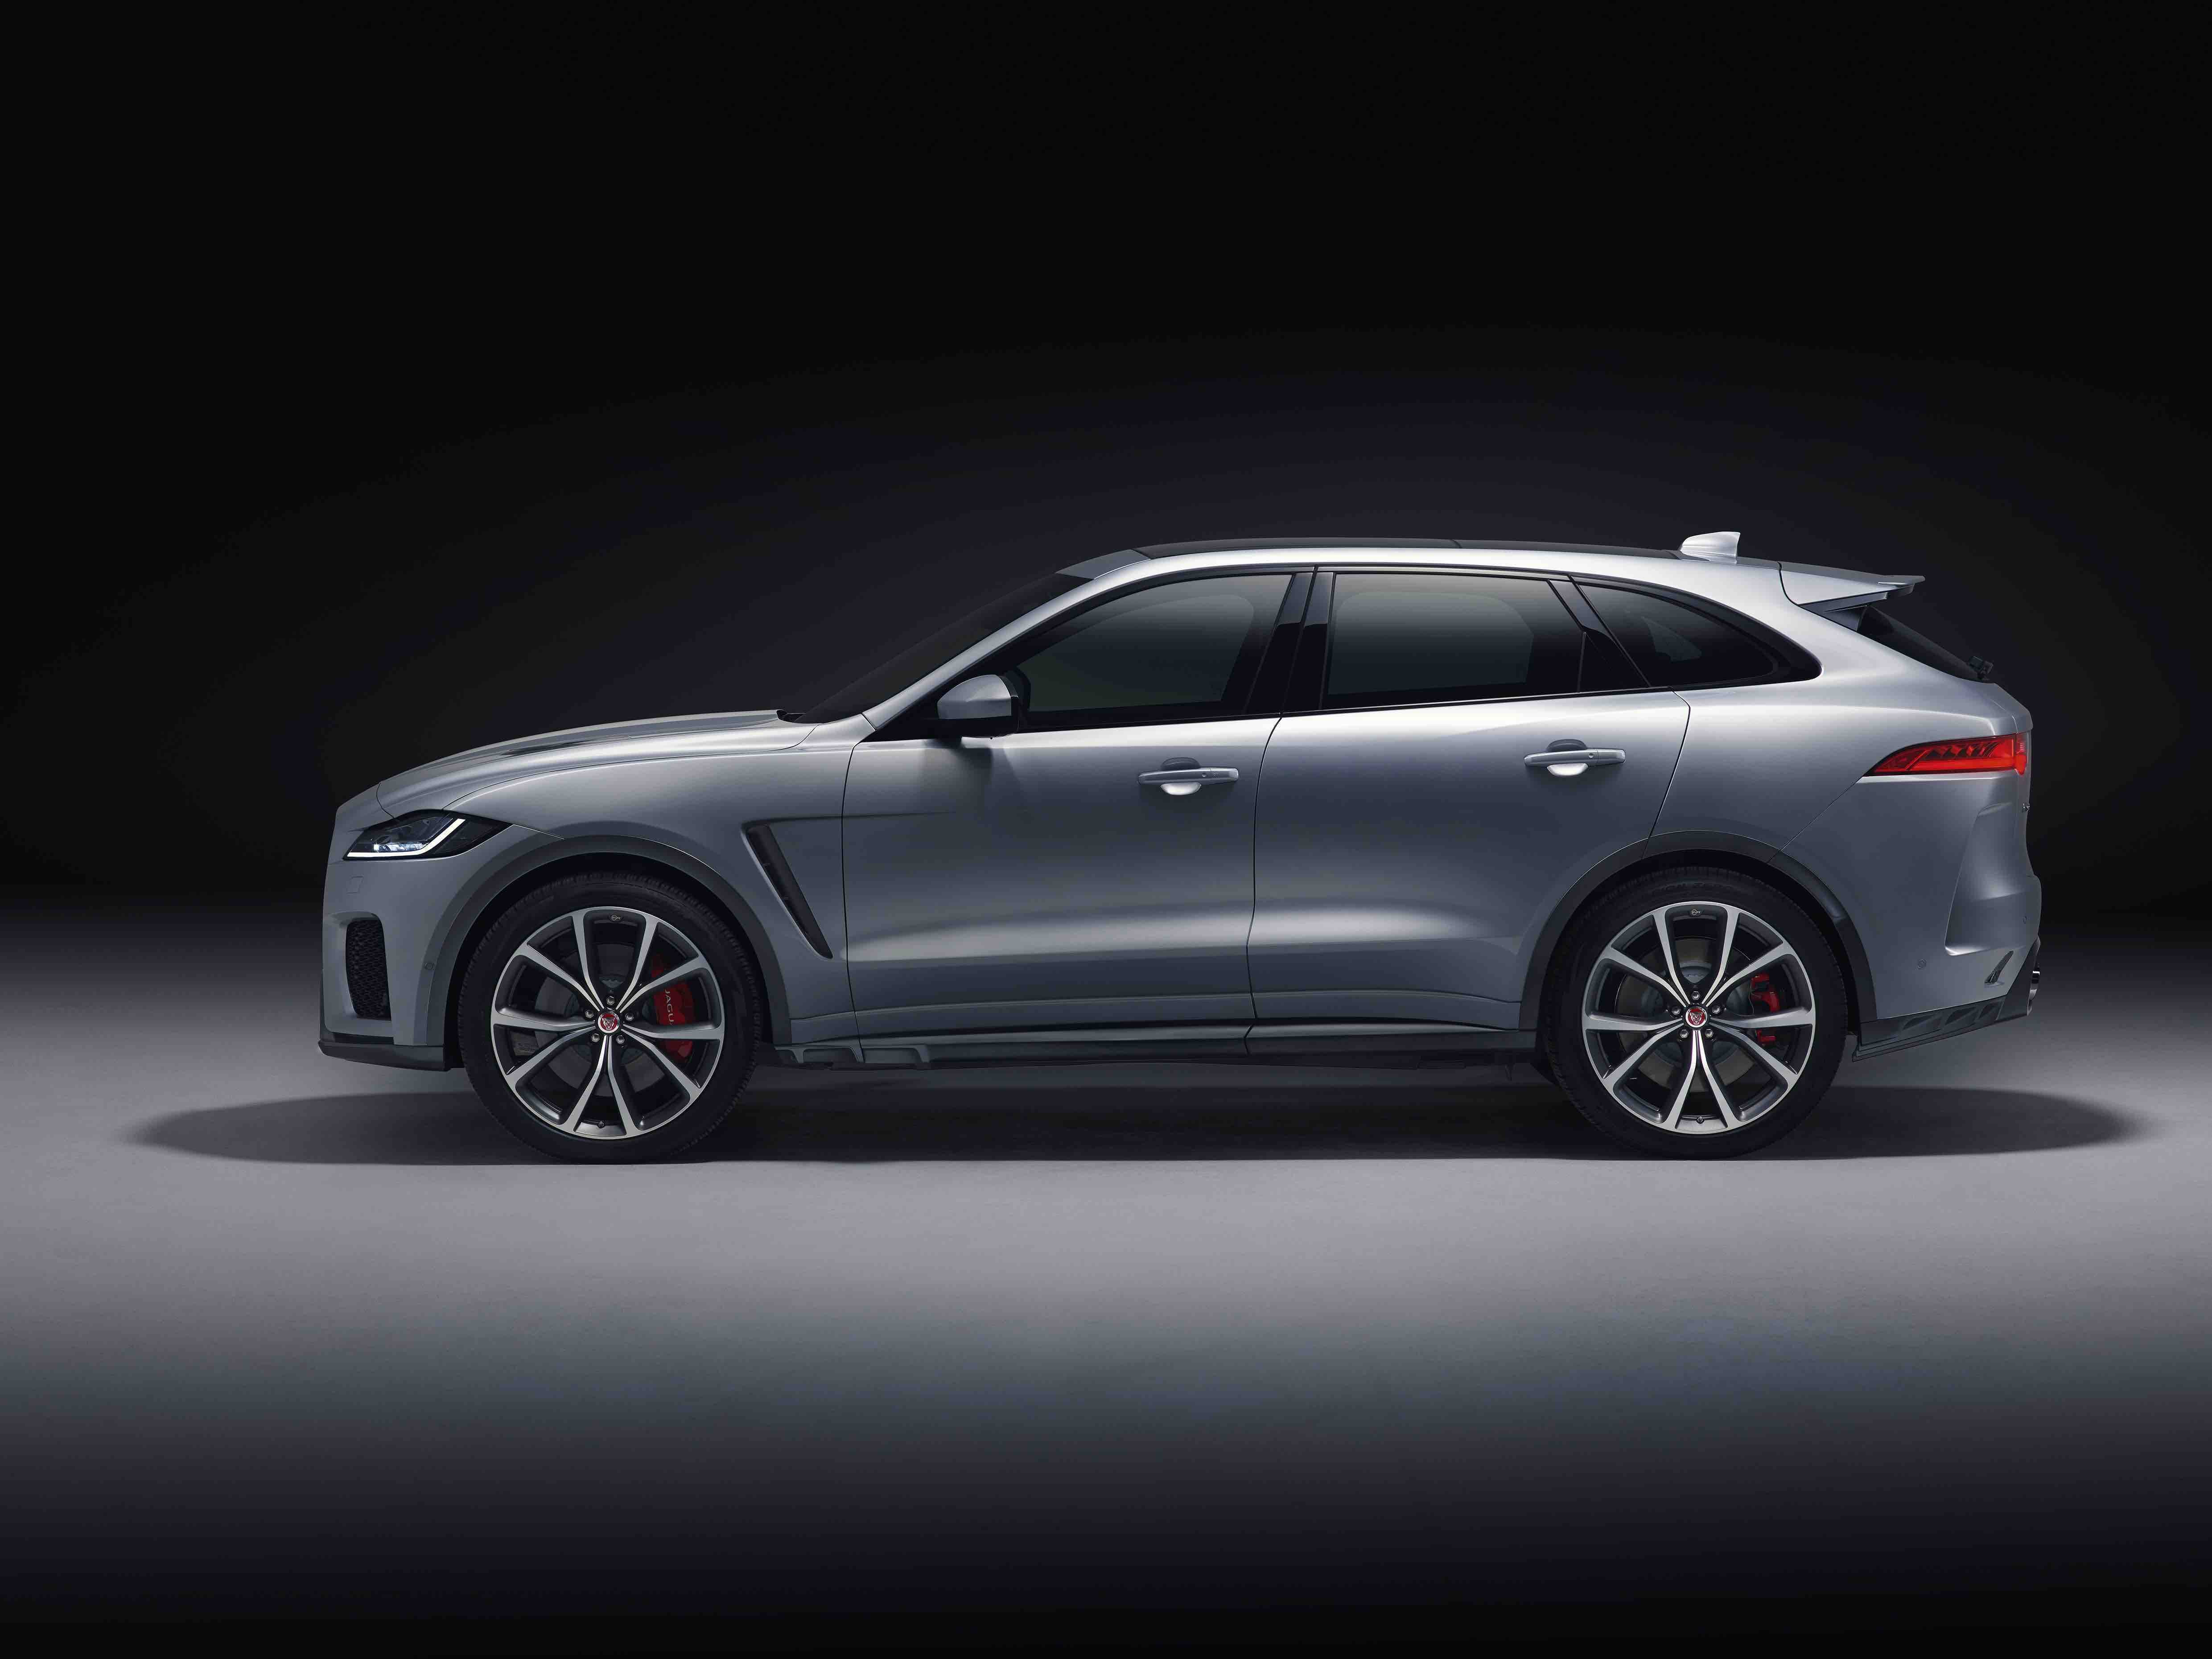 69 New Jaguar F Pace 2020 New Concept Release Date for Jaguar F Pace 2020 New Concept